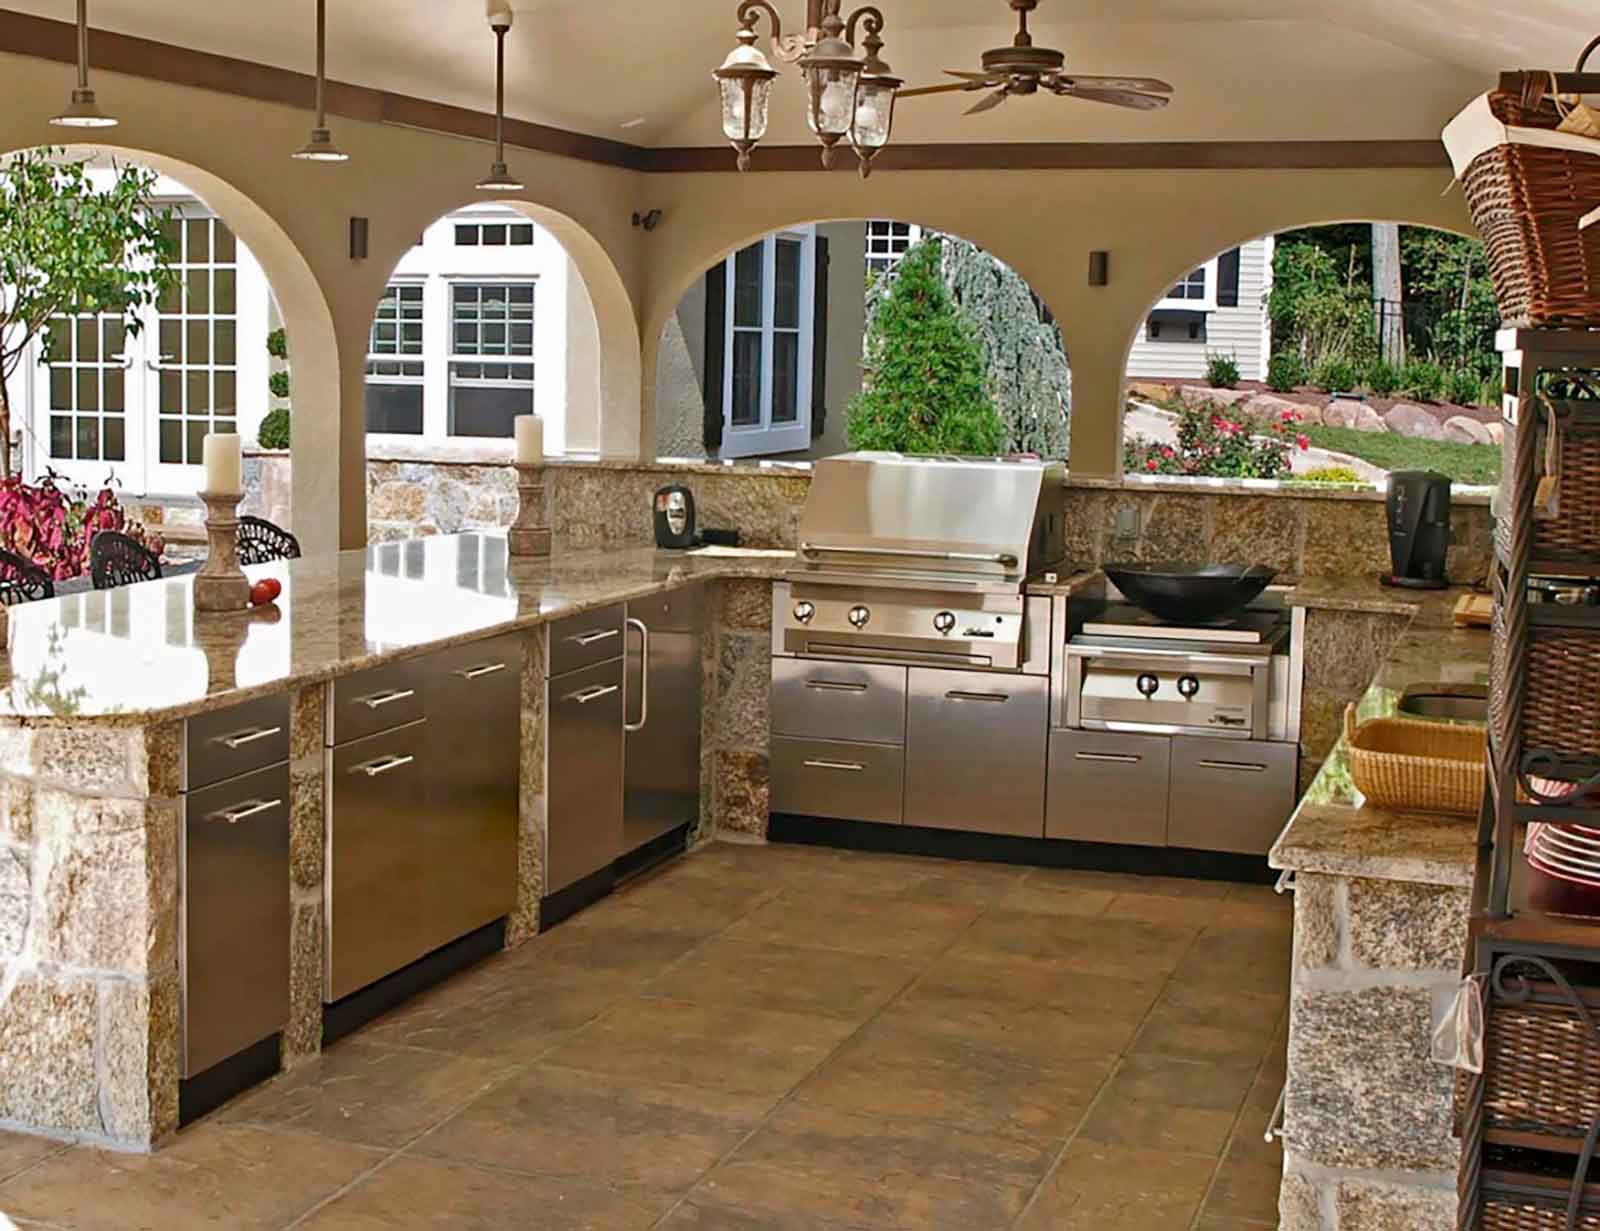 Luxury Outdoor Kitchen And Liances